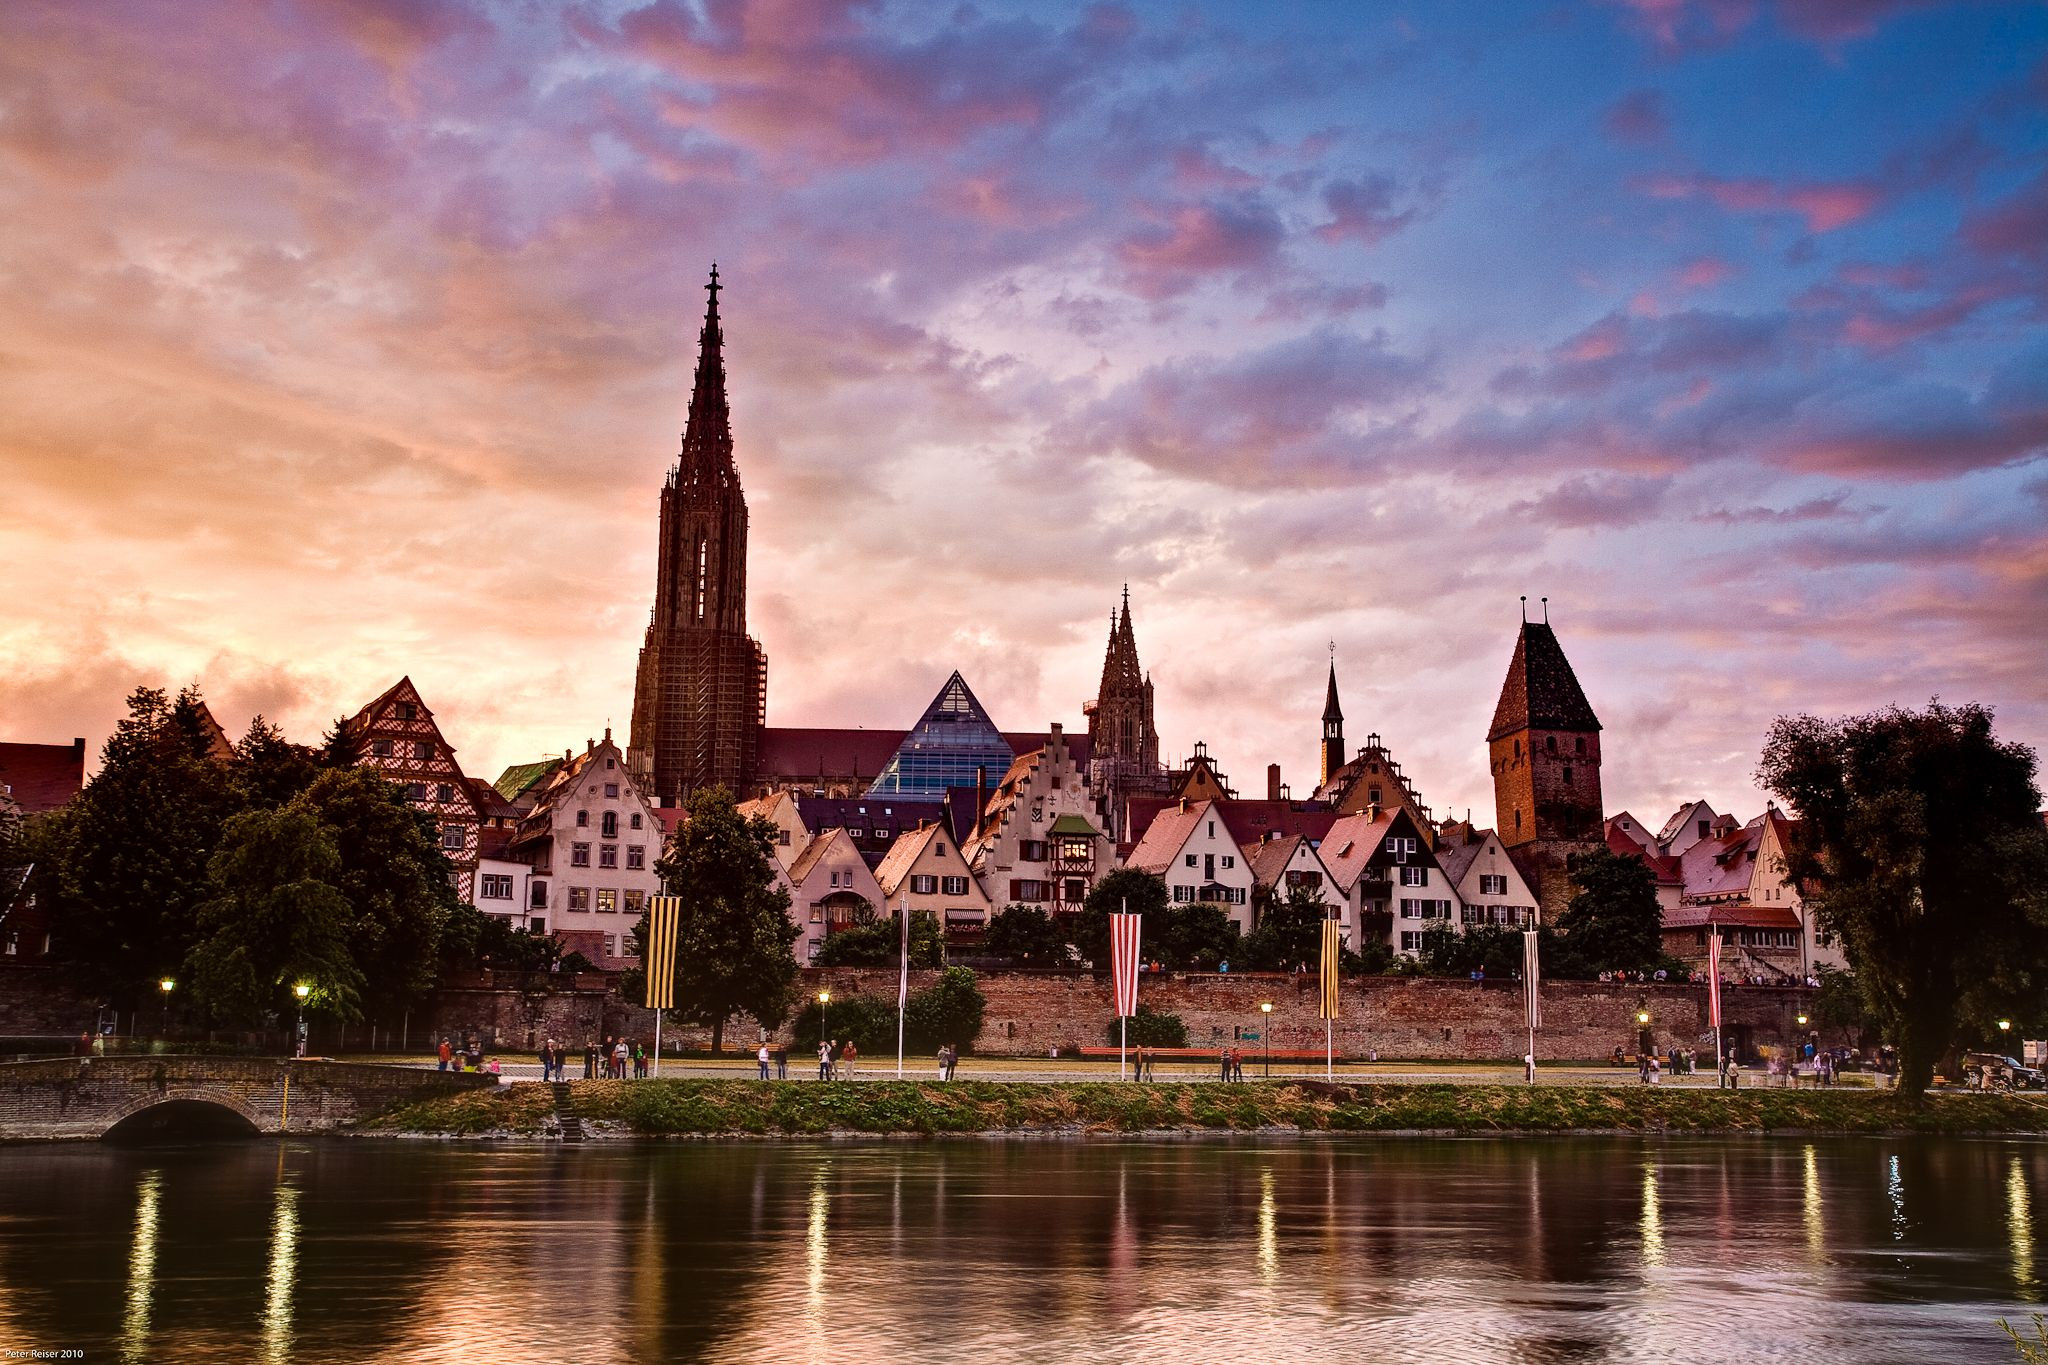 View of Ulm at dawn. More http://www.ulm-kalender.de/bilddatenbank/index.php?/category/41